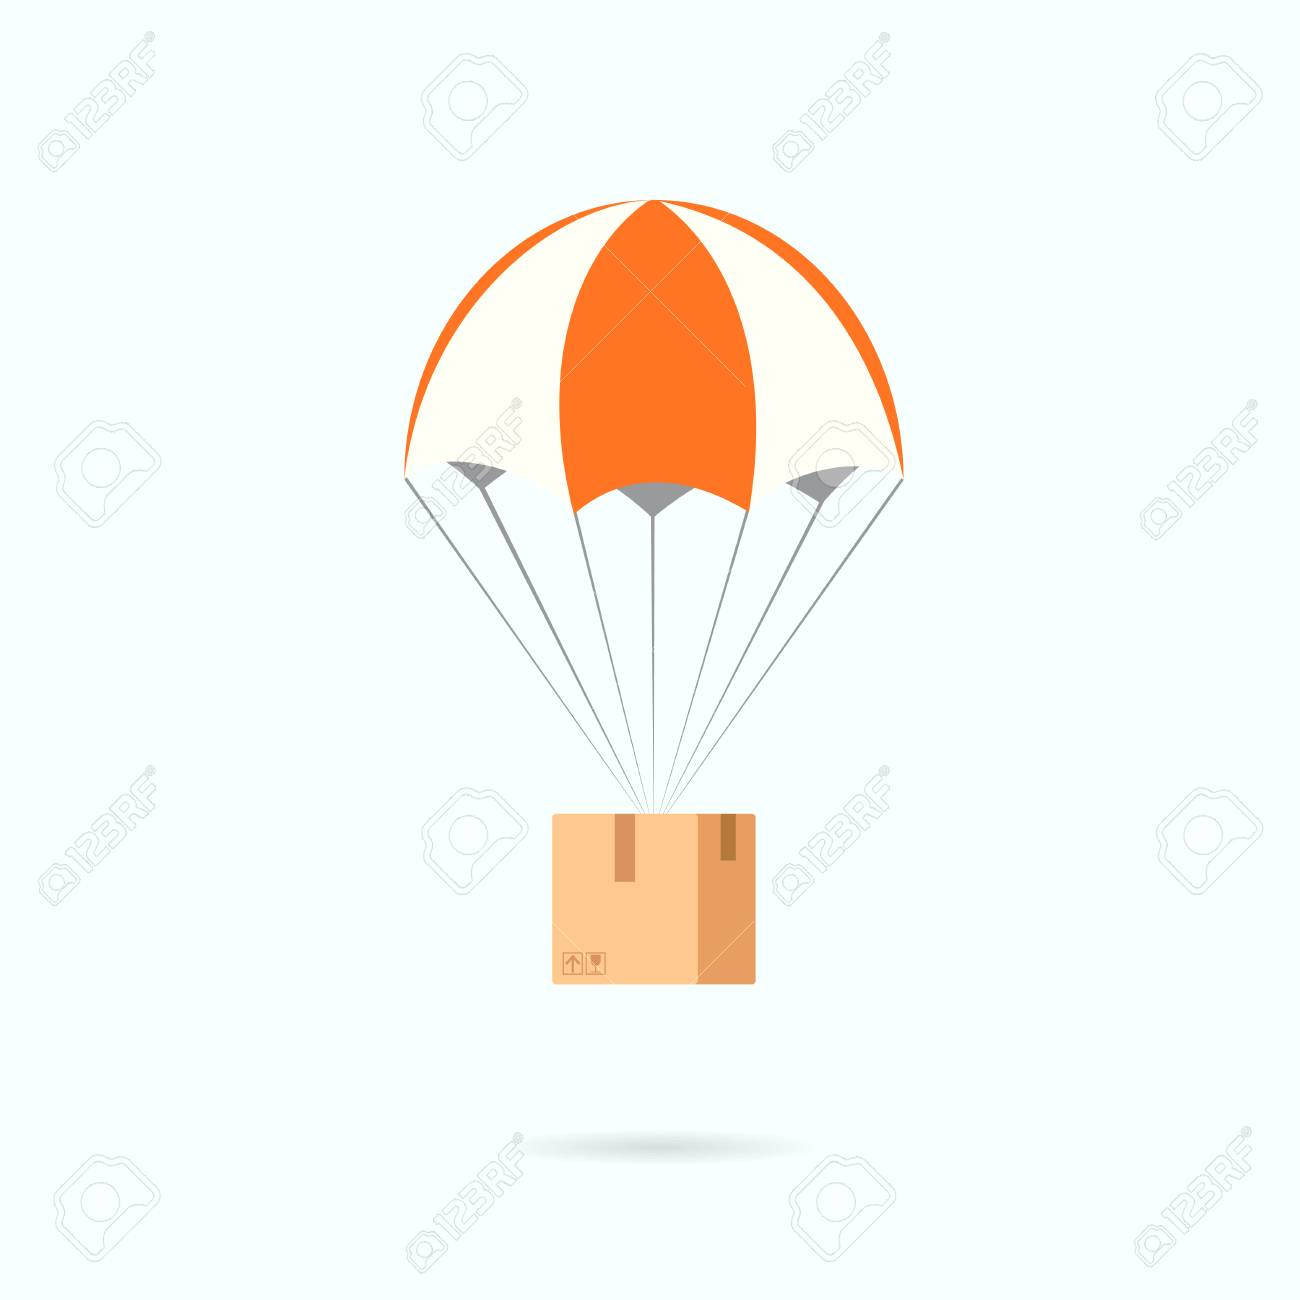 Parachute with box. Delivery clipart isolated on white background.